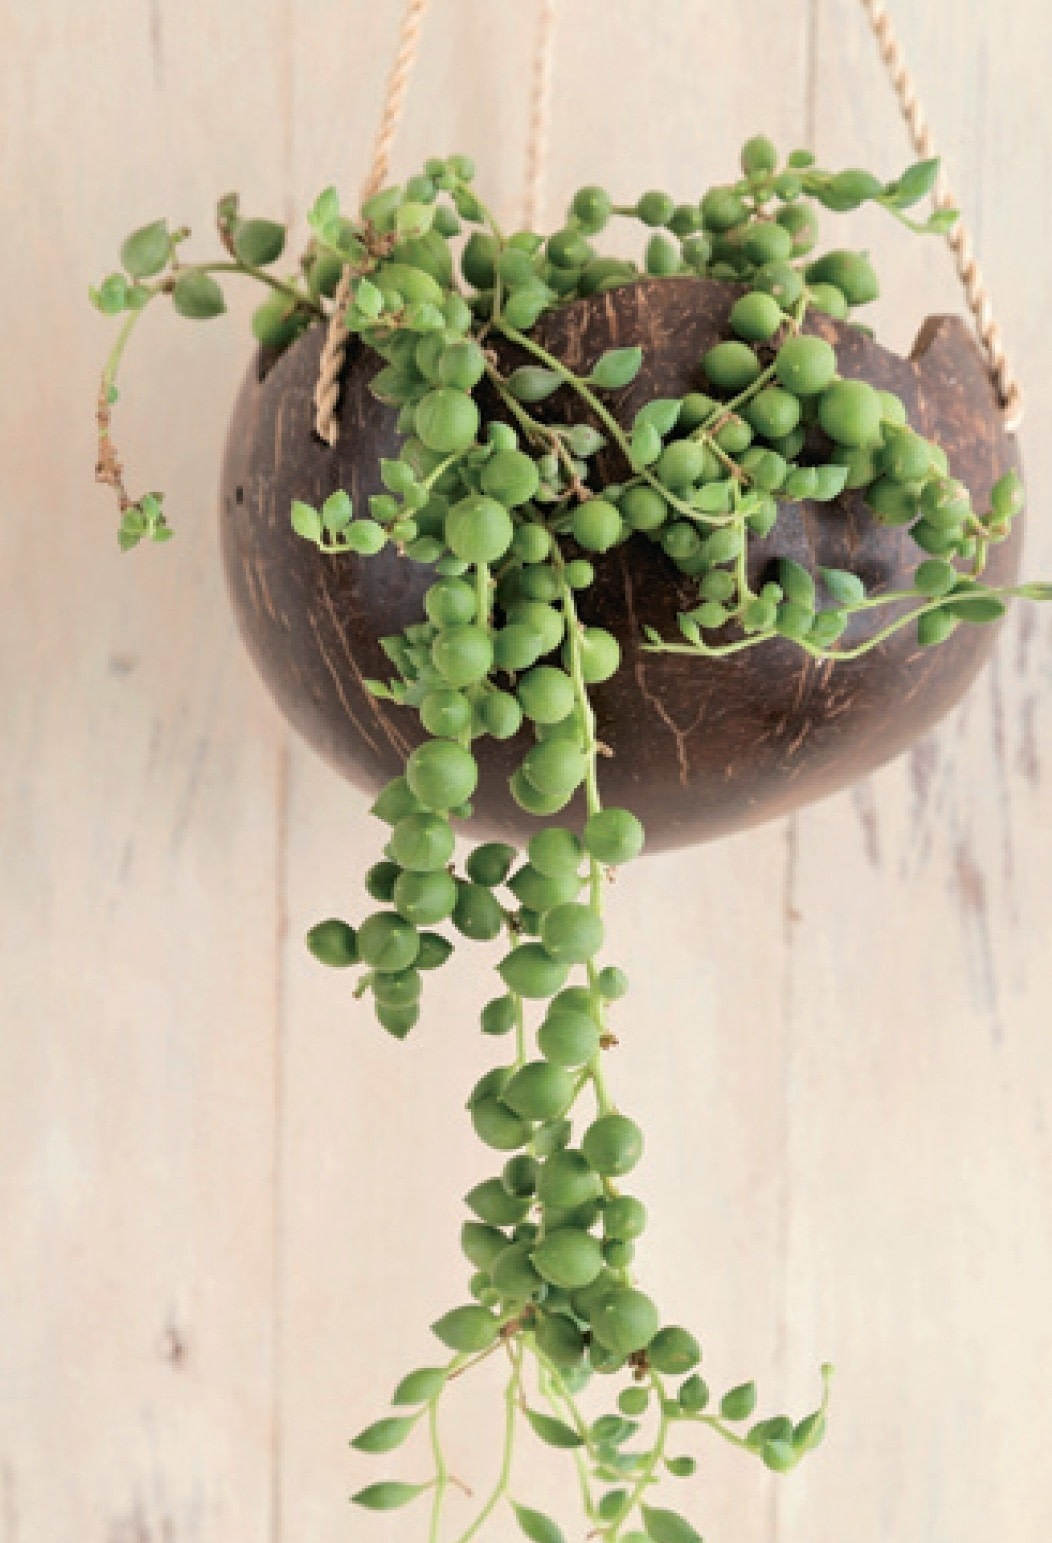 String Of Pearls 183 Extract From Stylish Succulents By Yoshinobu Kondo 183 How To Plant A Plant A